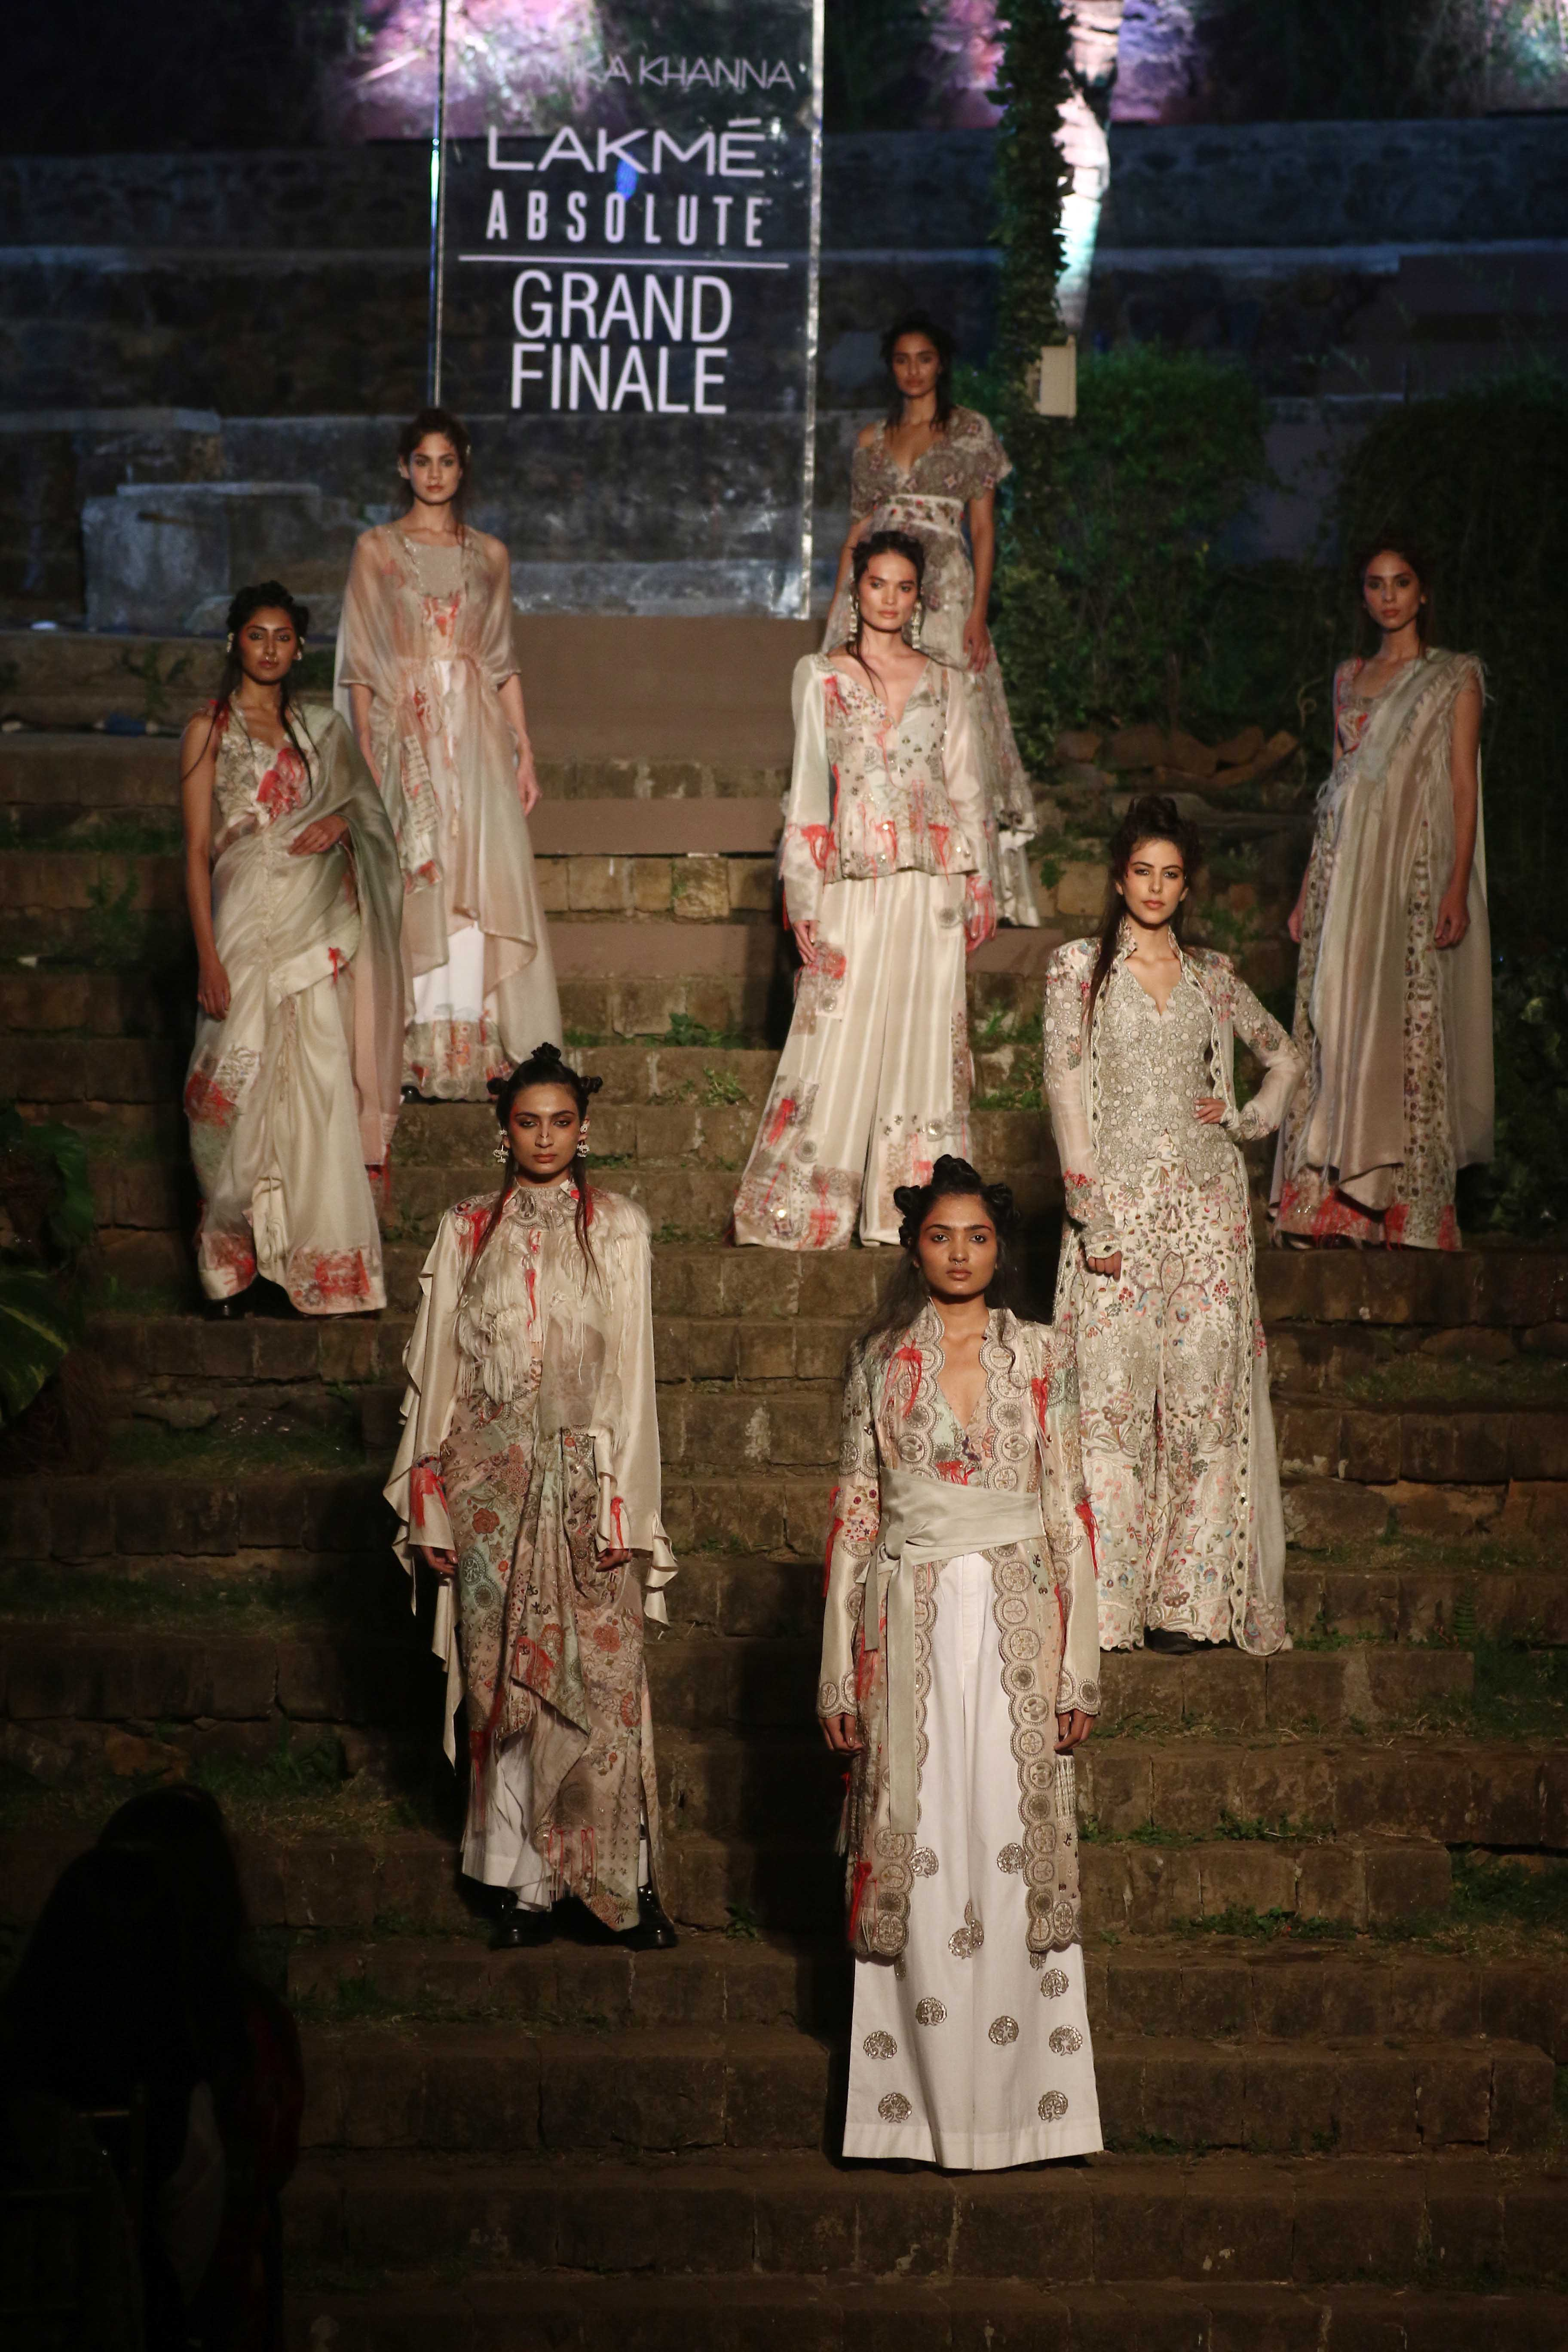 1 Lakme Absolute Grand Finale Summer Resort 2018 by Anamika Khanna